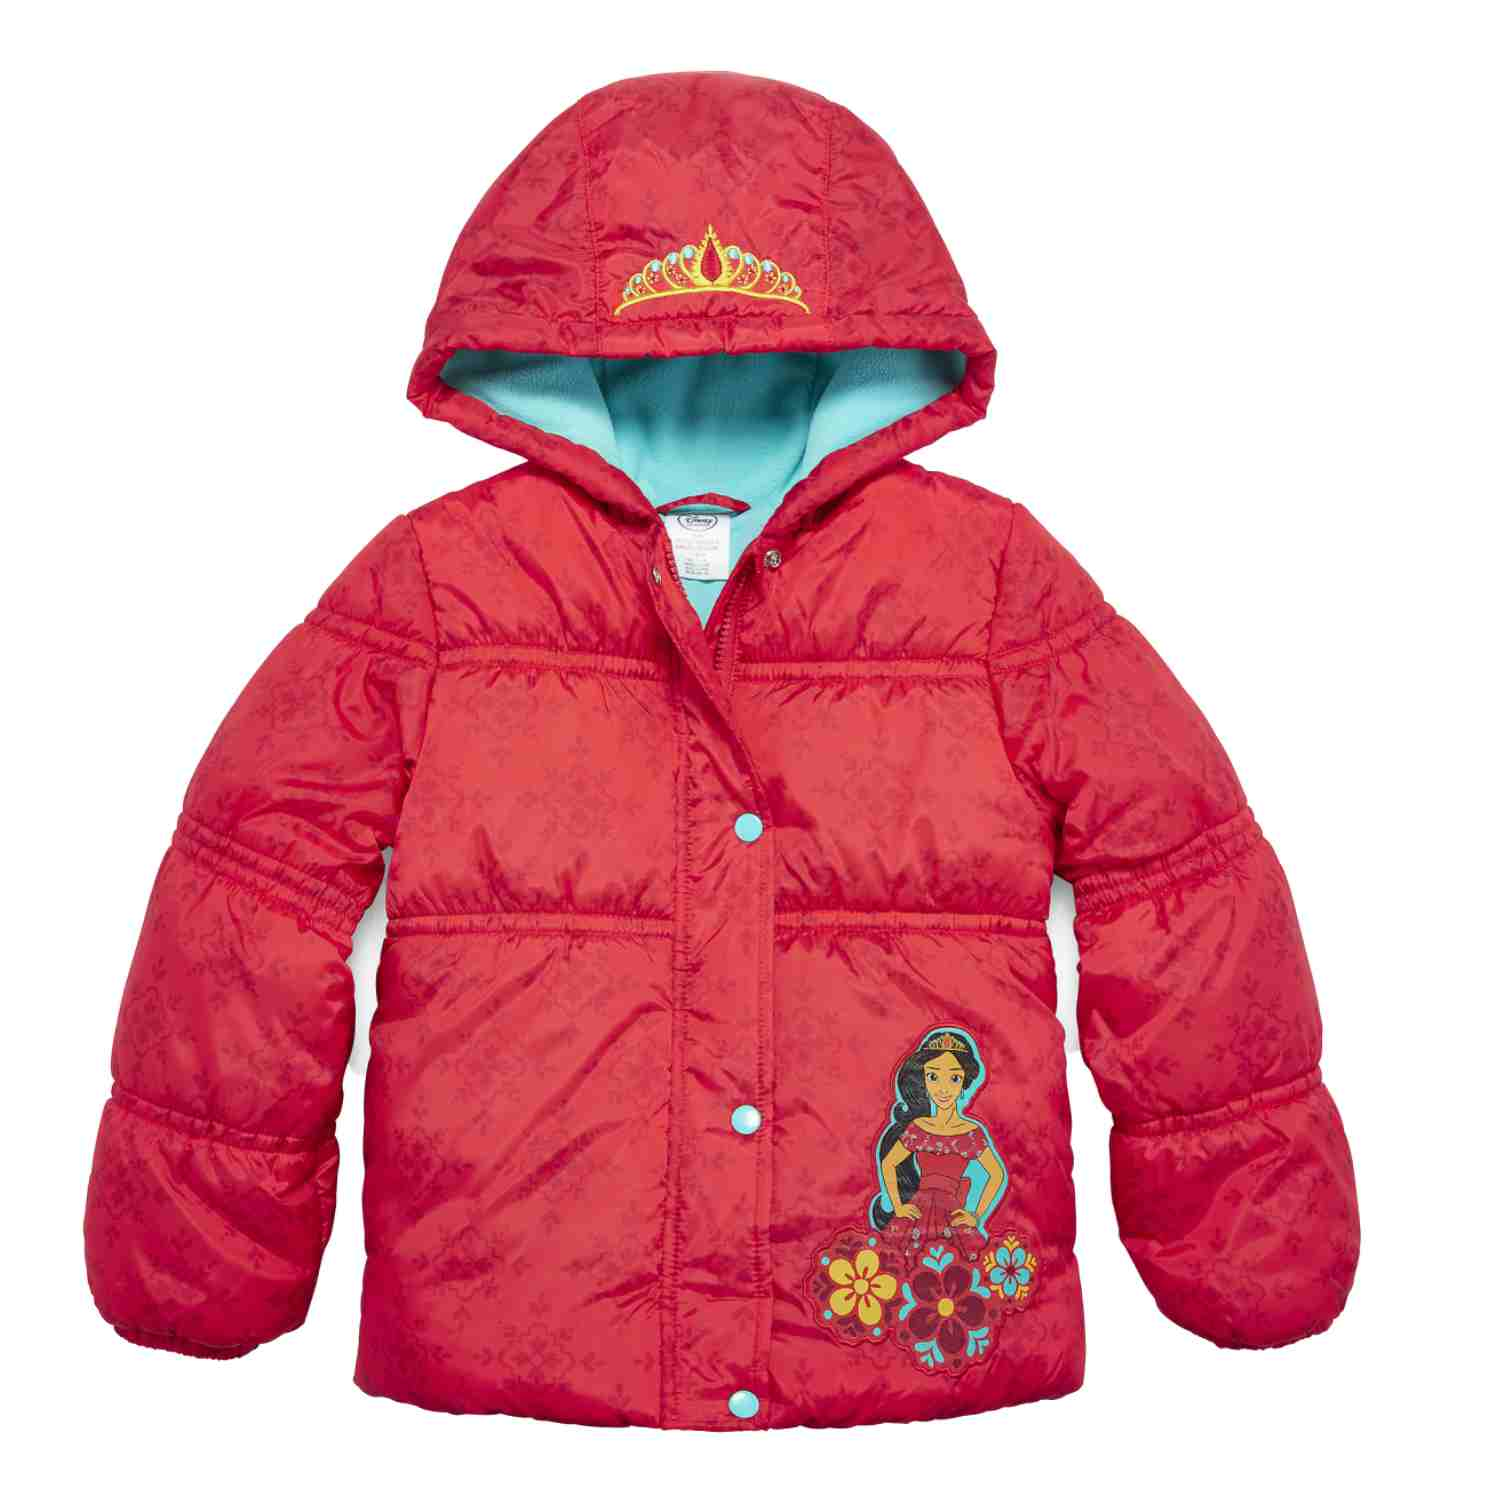 Disney Princess Toddler Girls Elena of Avalor Red Puffer Jacket Winter Coat